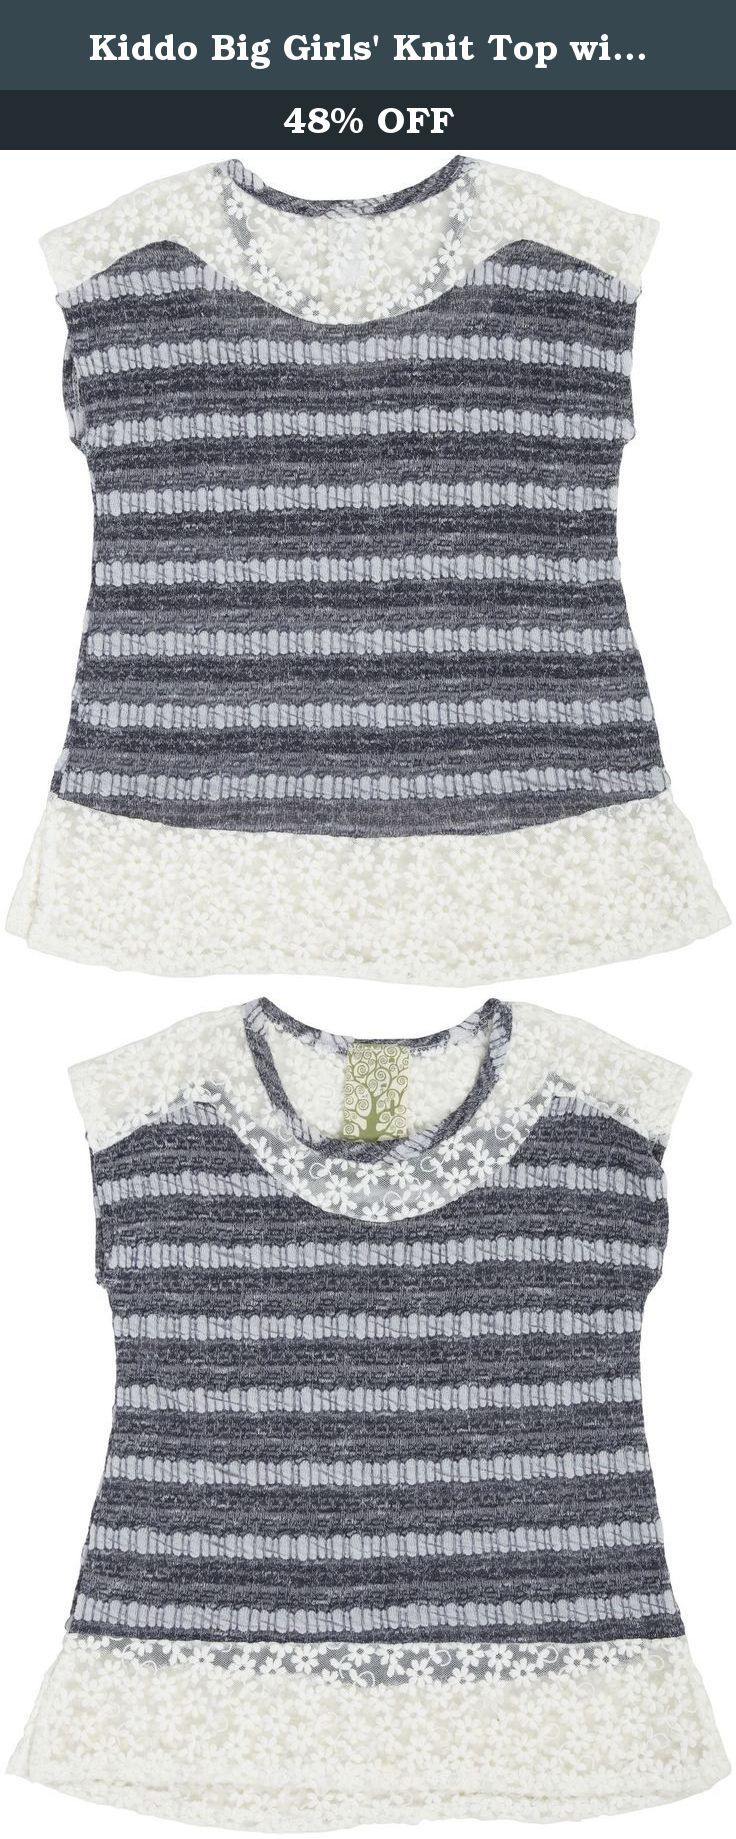 Kiddo Big Girls' Knit Top with Daisy Mesh Trim, Navy, Large. Short sleeve top with lace details.